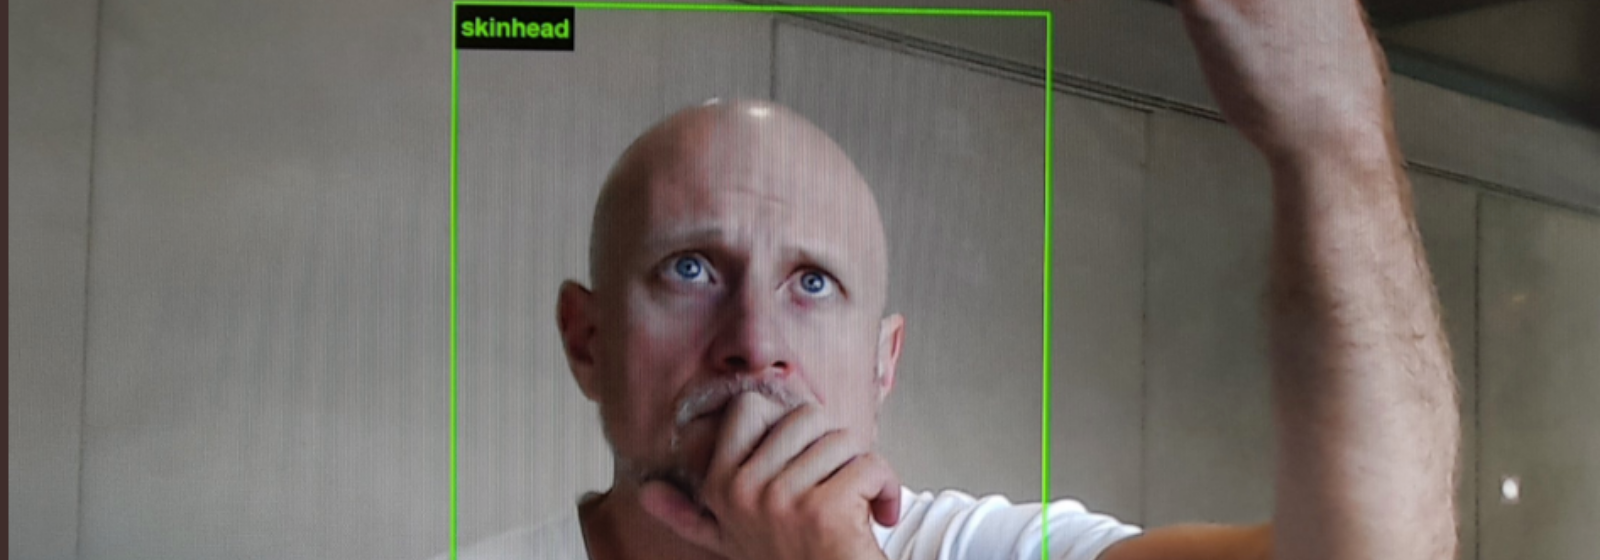 "Trevor Paglen, a bald white man, looking concerned in a webcam, with a green box around his face labeled ""skinhead""."